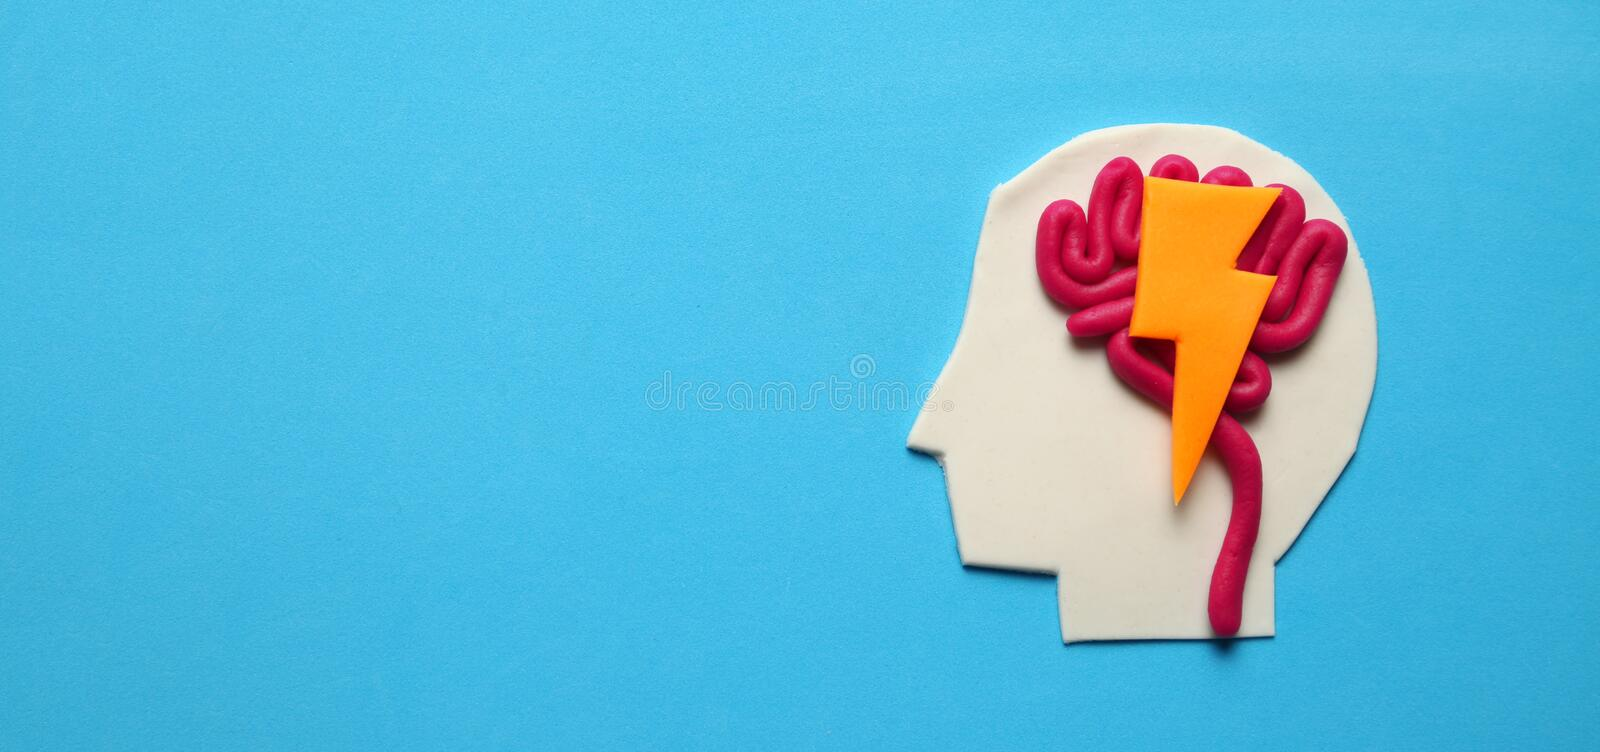 Plasticine head and mind. Brain activity, intelligent concept stock photo